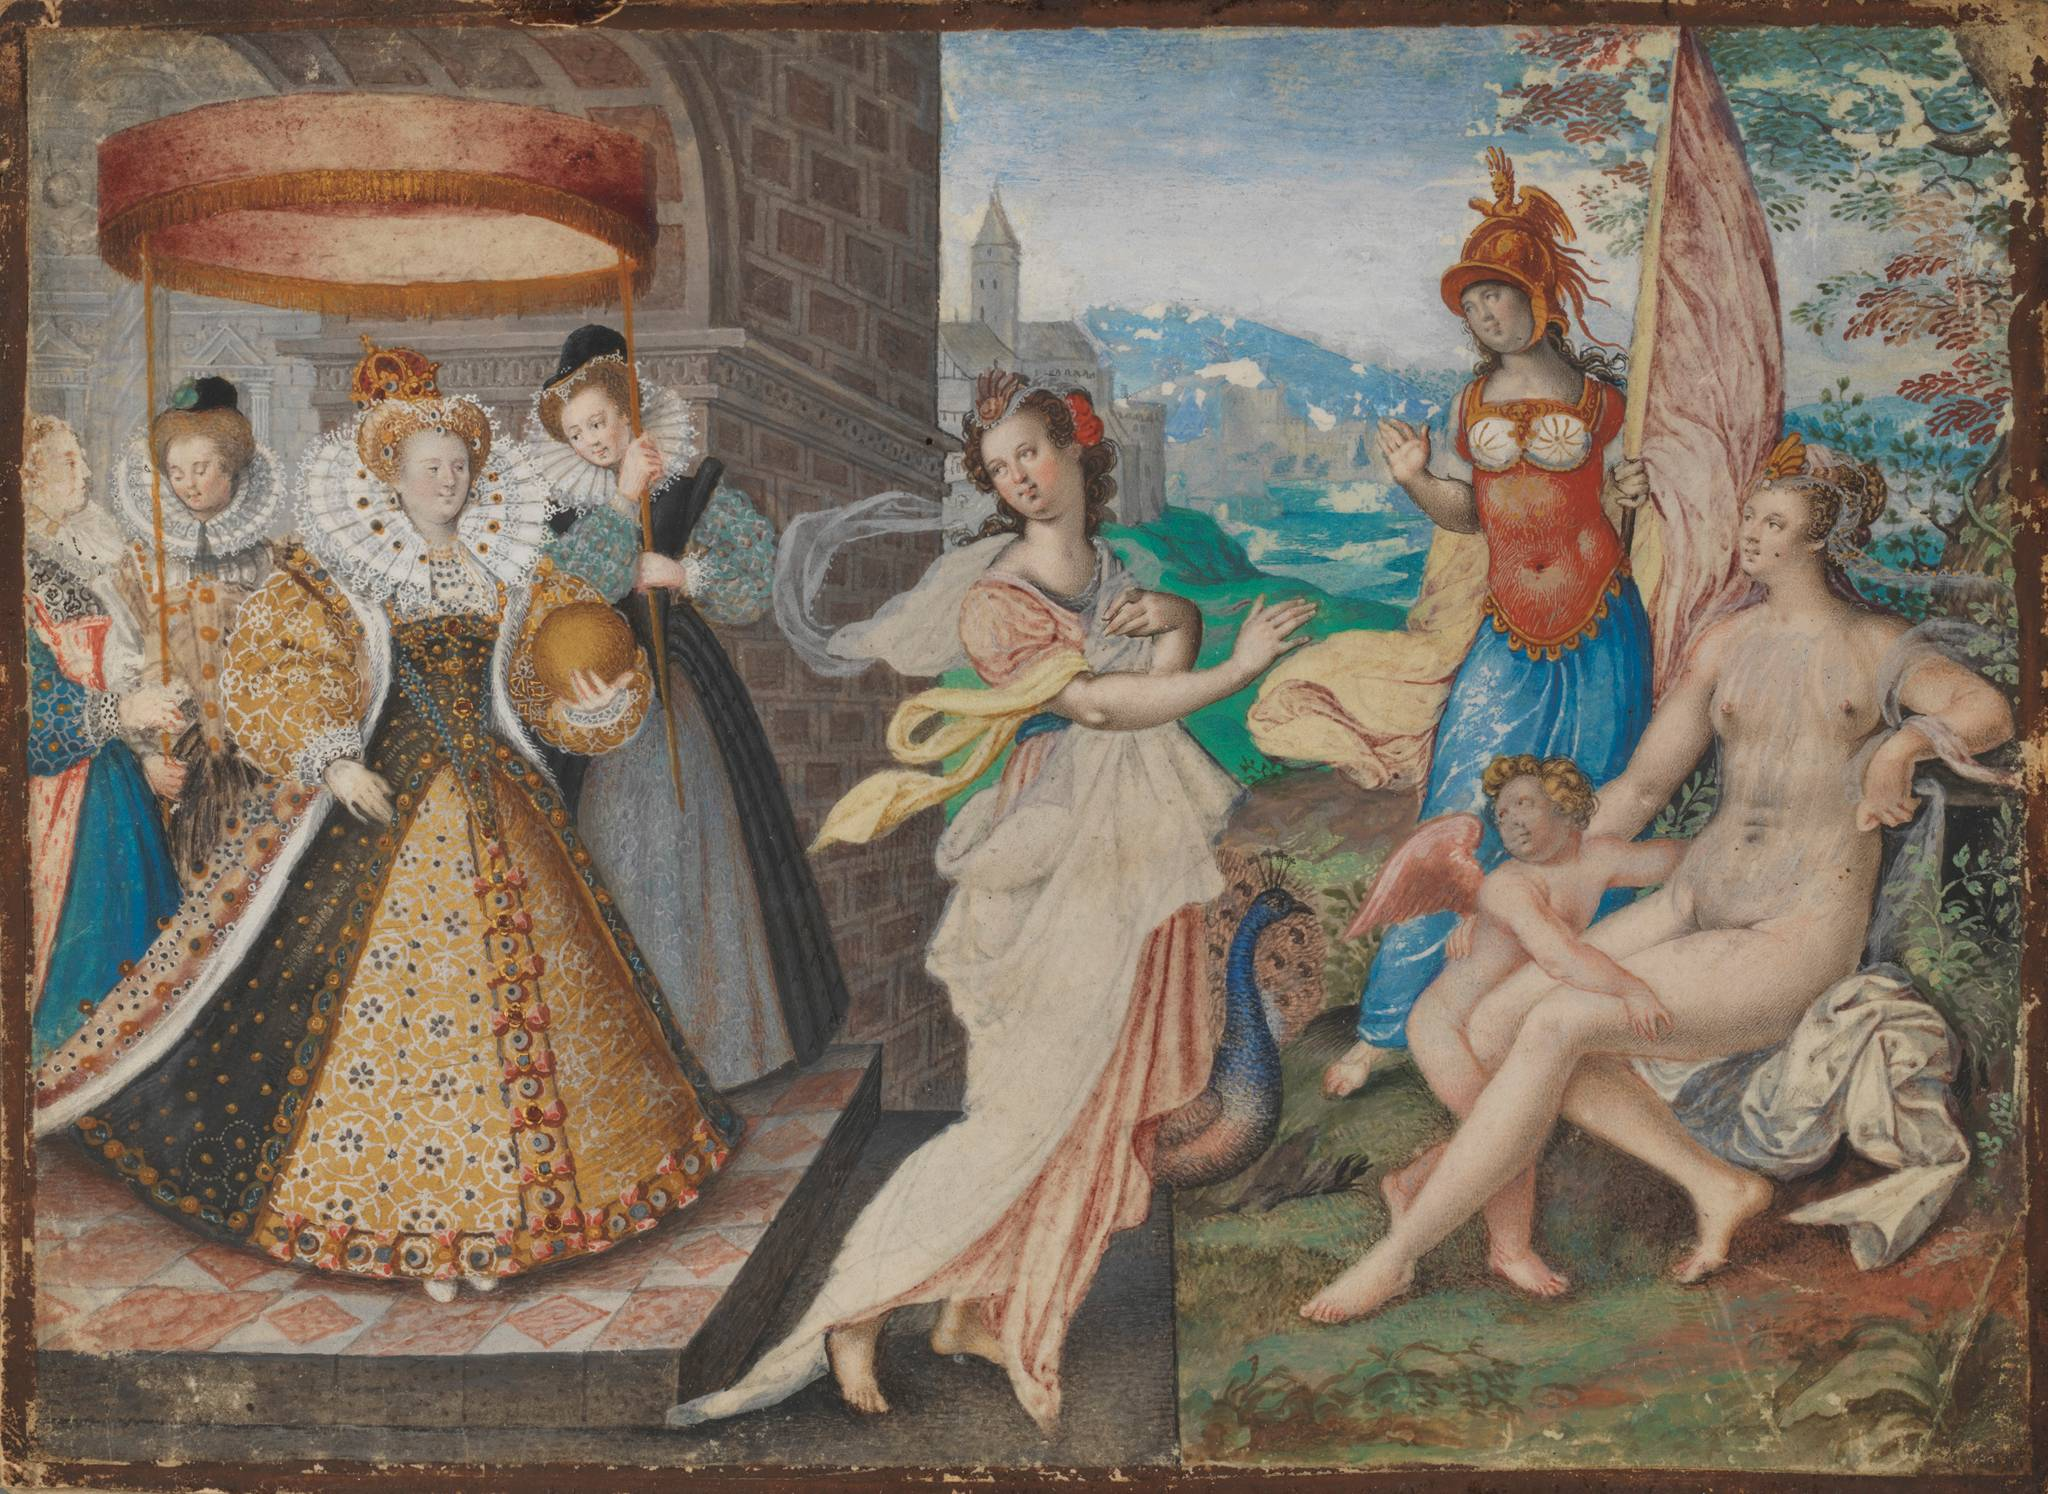 Queen-Elizabeth-and-the-Three-Goddesses-Isaac-Oliver-ca-1590.jpg